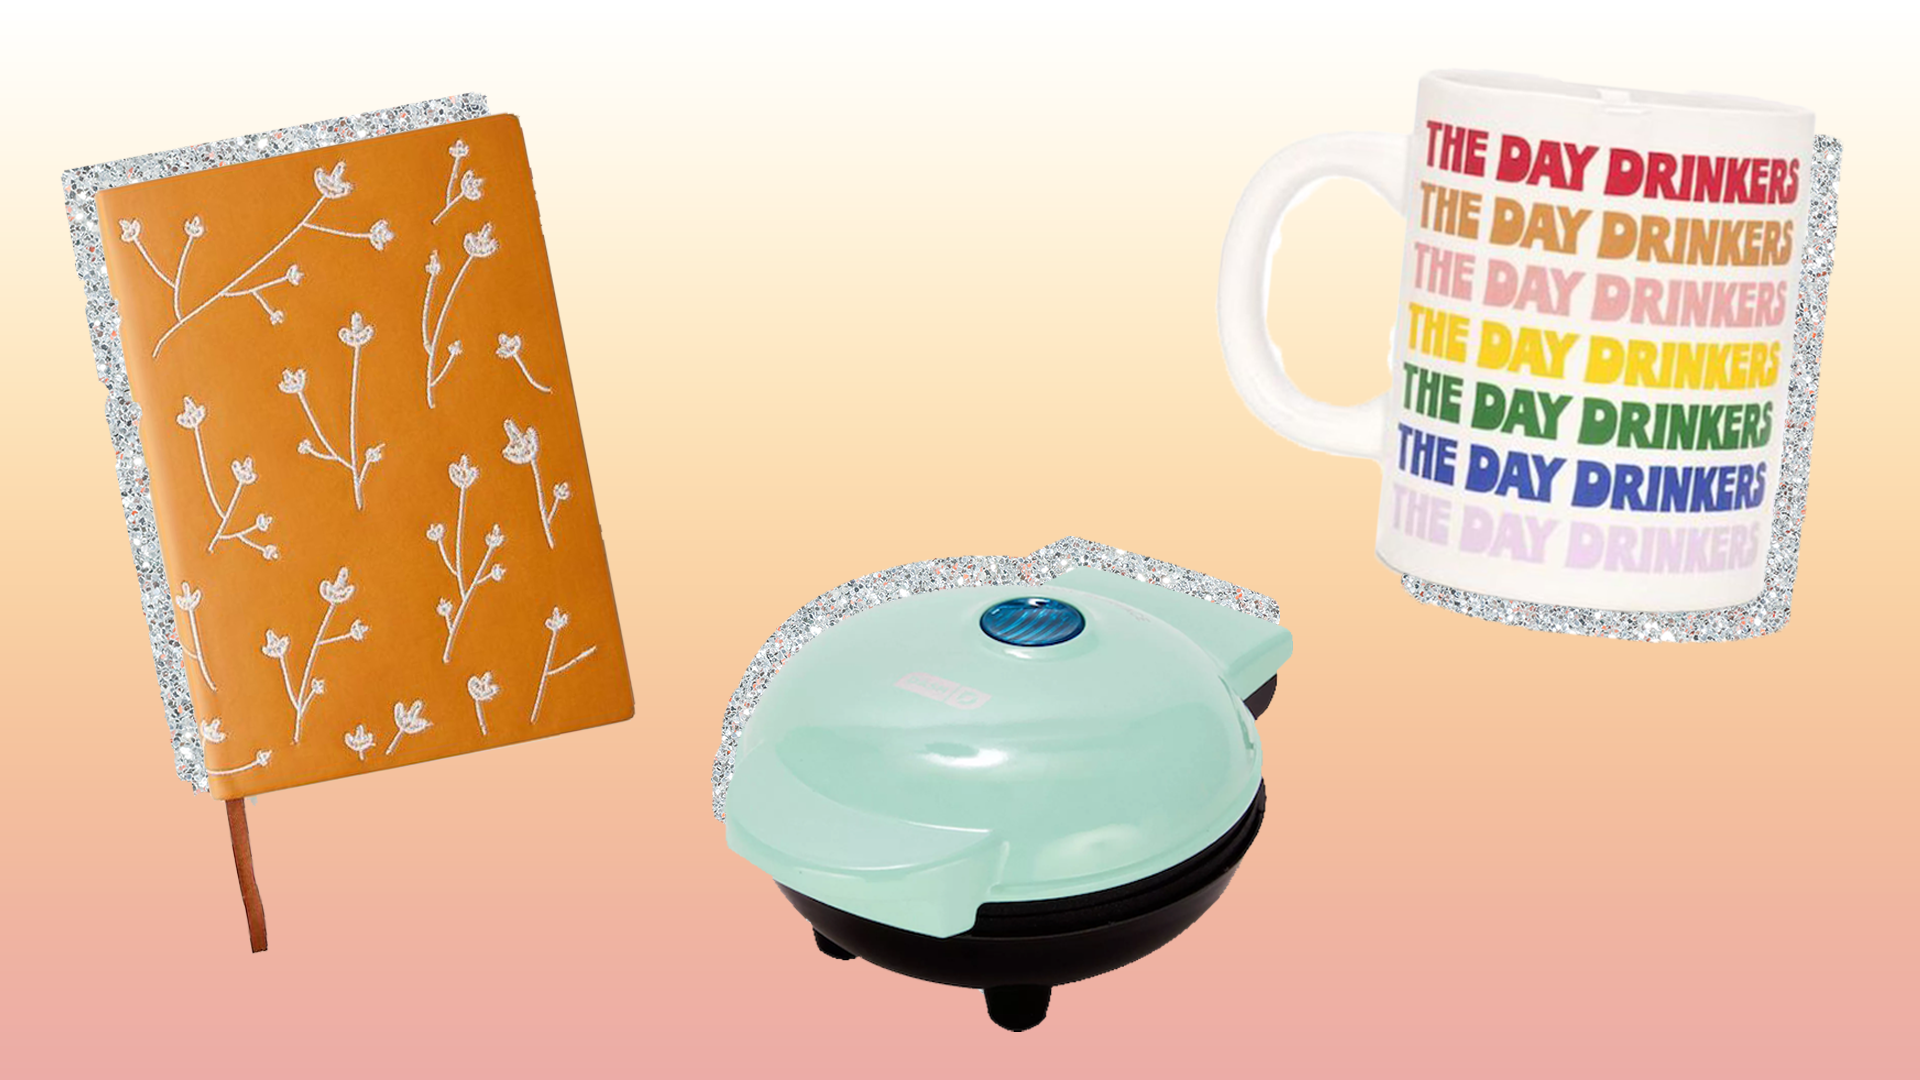 25 Gifts Under $25 You Can Send to Brighten Someone's Day